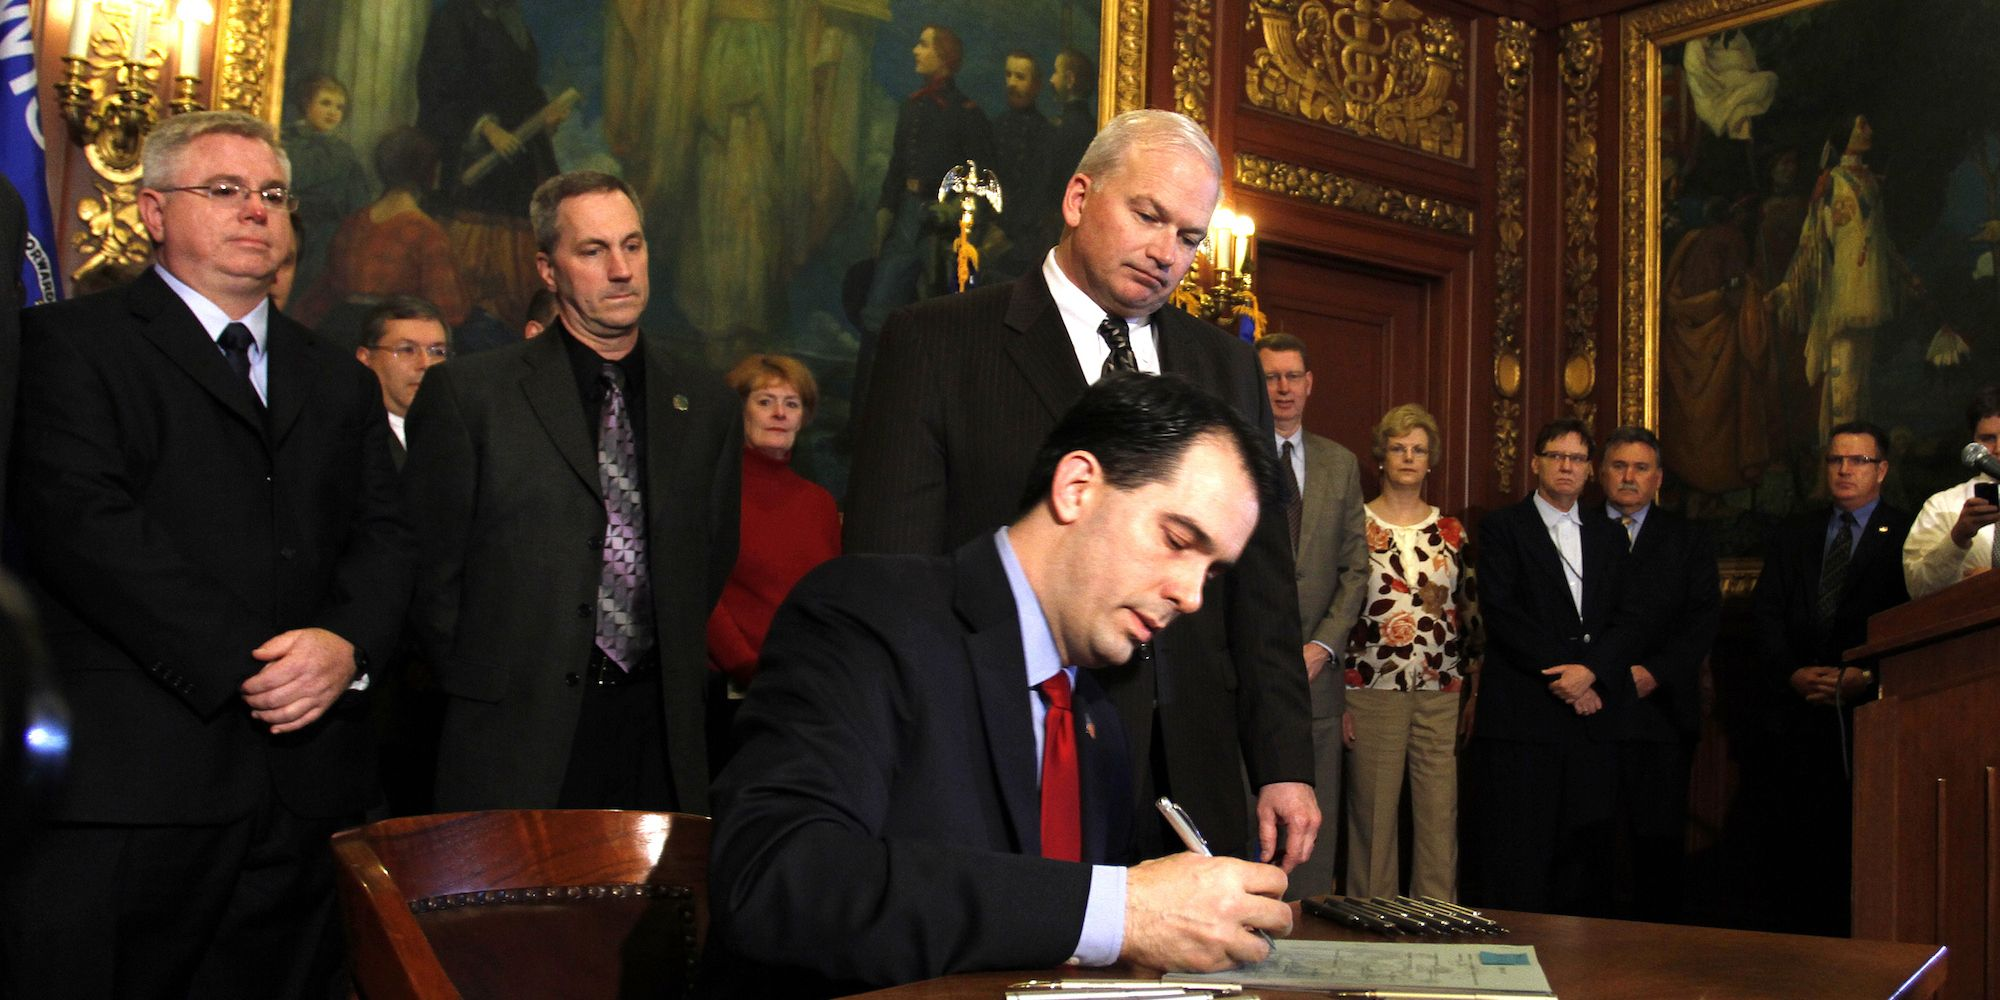 USA - Politics - Wisconsin Budget Legislation Protests